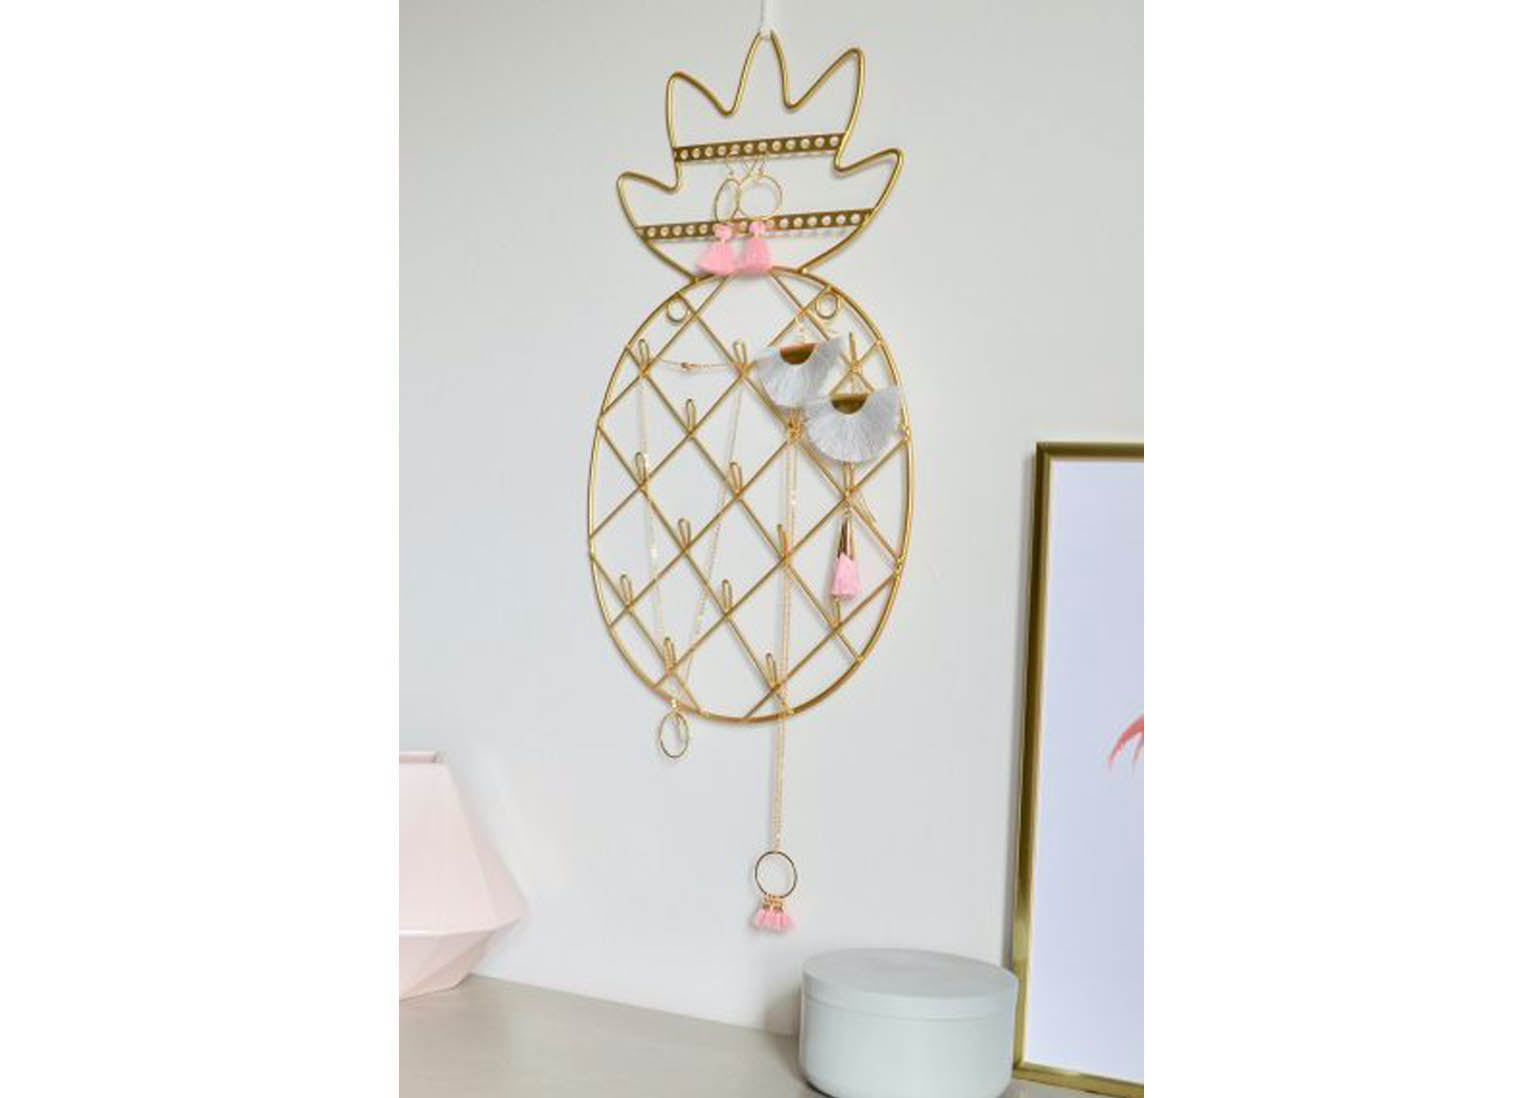 A beautiful photograph of a unique pineapple jewellery holder. This fun and quirky design is from not a jewellery box